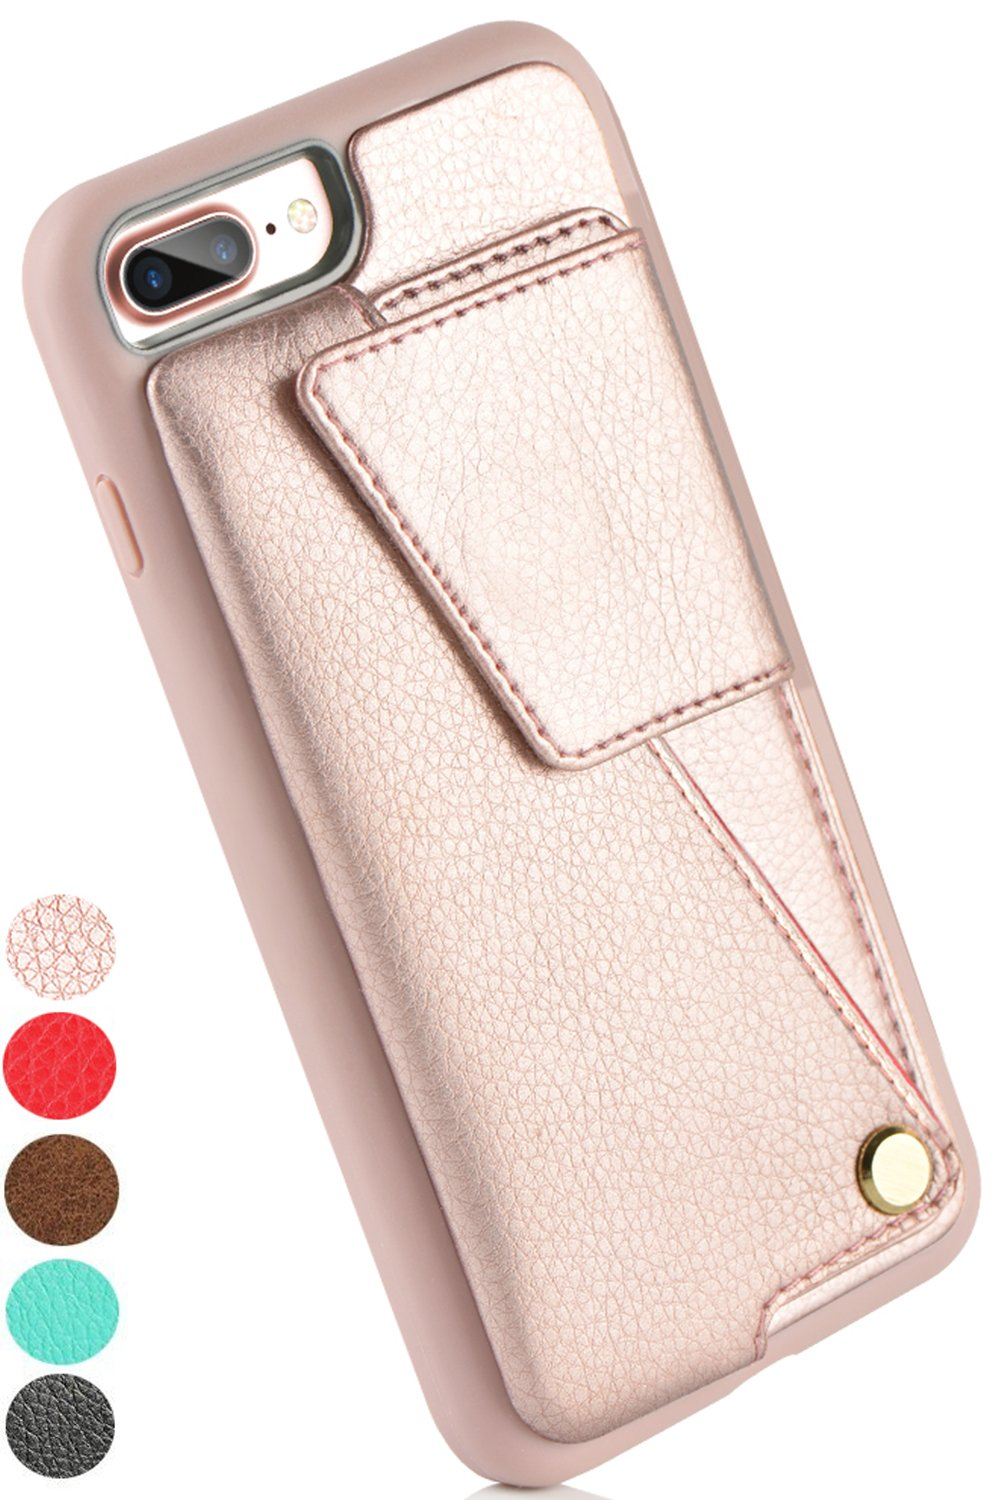 iPhone 8 Plus Wallet Case, ZVEdeng iPhone 7 Plus Card Holder Case, Protective Shockproof Leather Wallet Case with Card Holder for Apple iPhone 8 Plus (2017)/iPhone 7 Plus (2016) - Rose Gold …